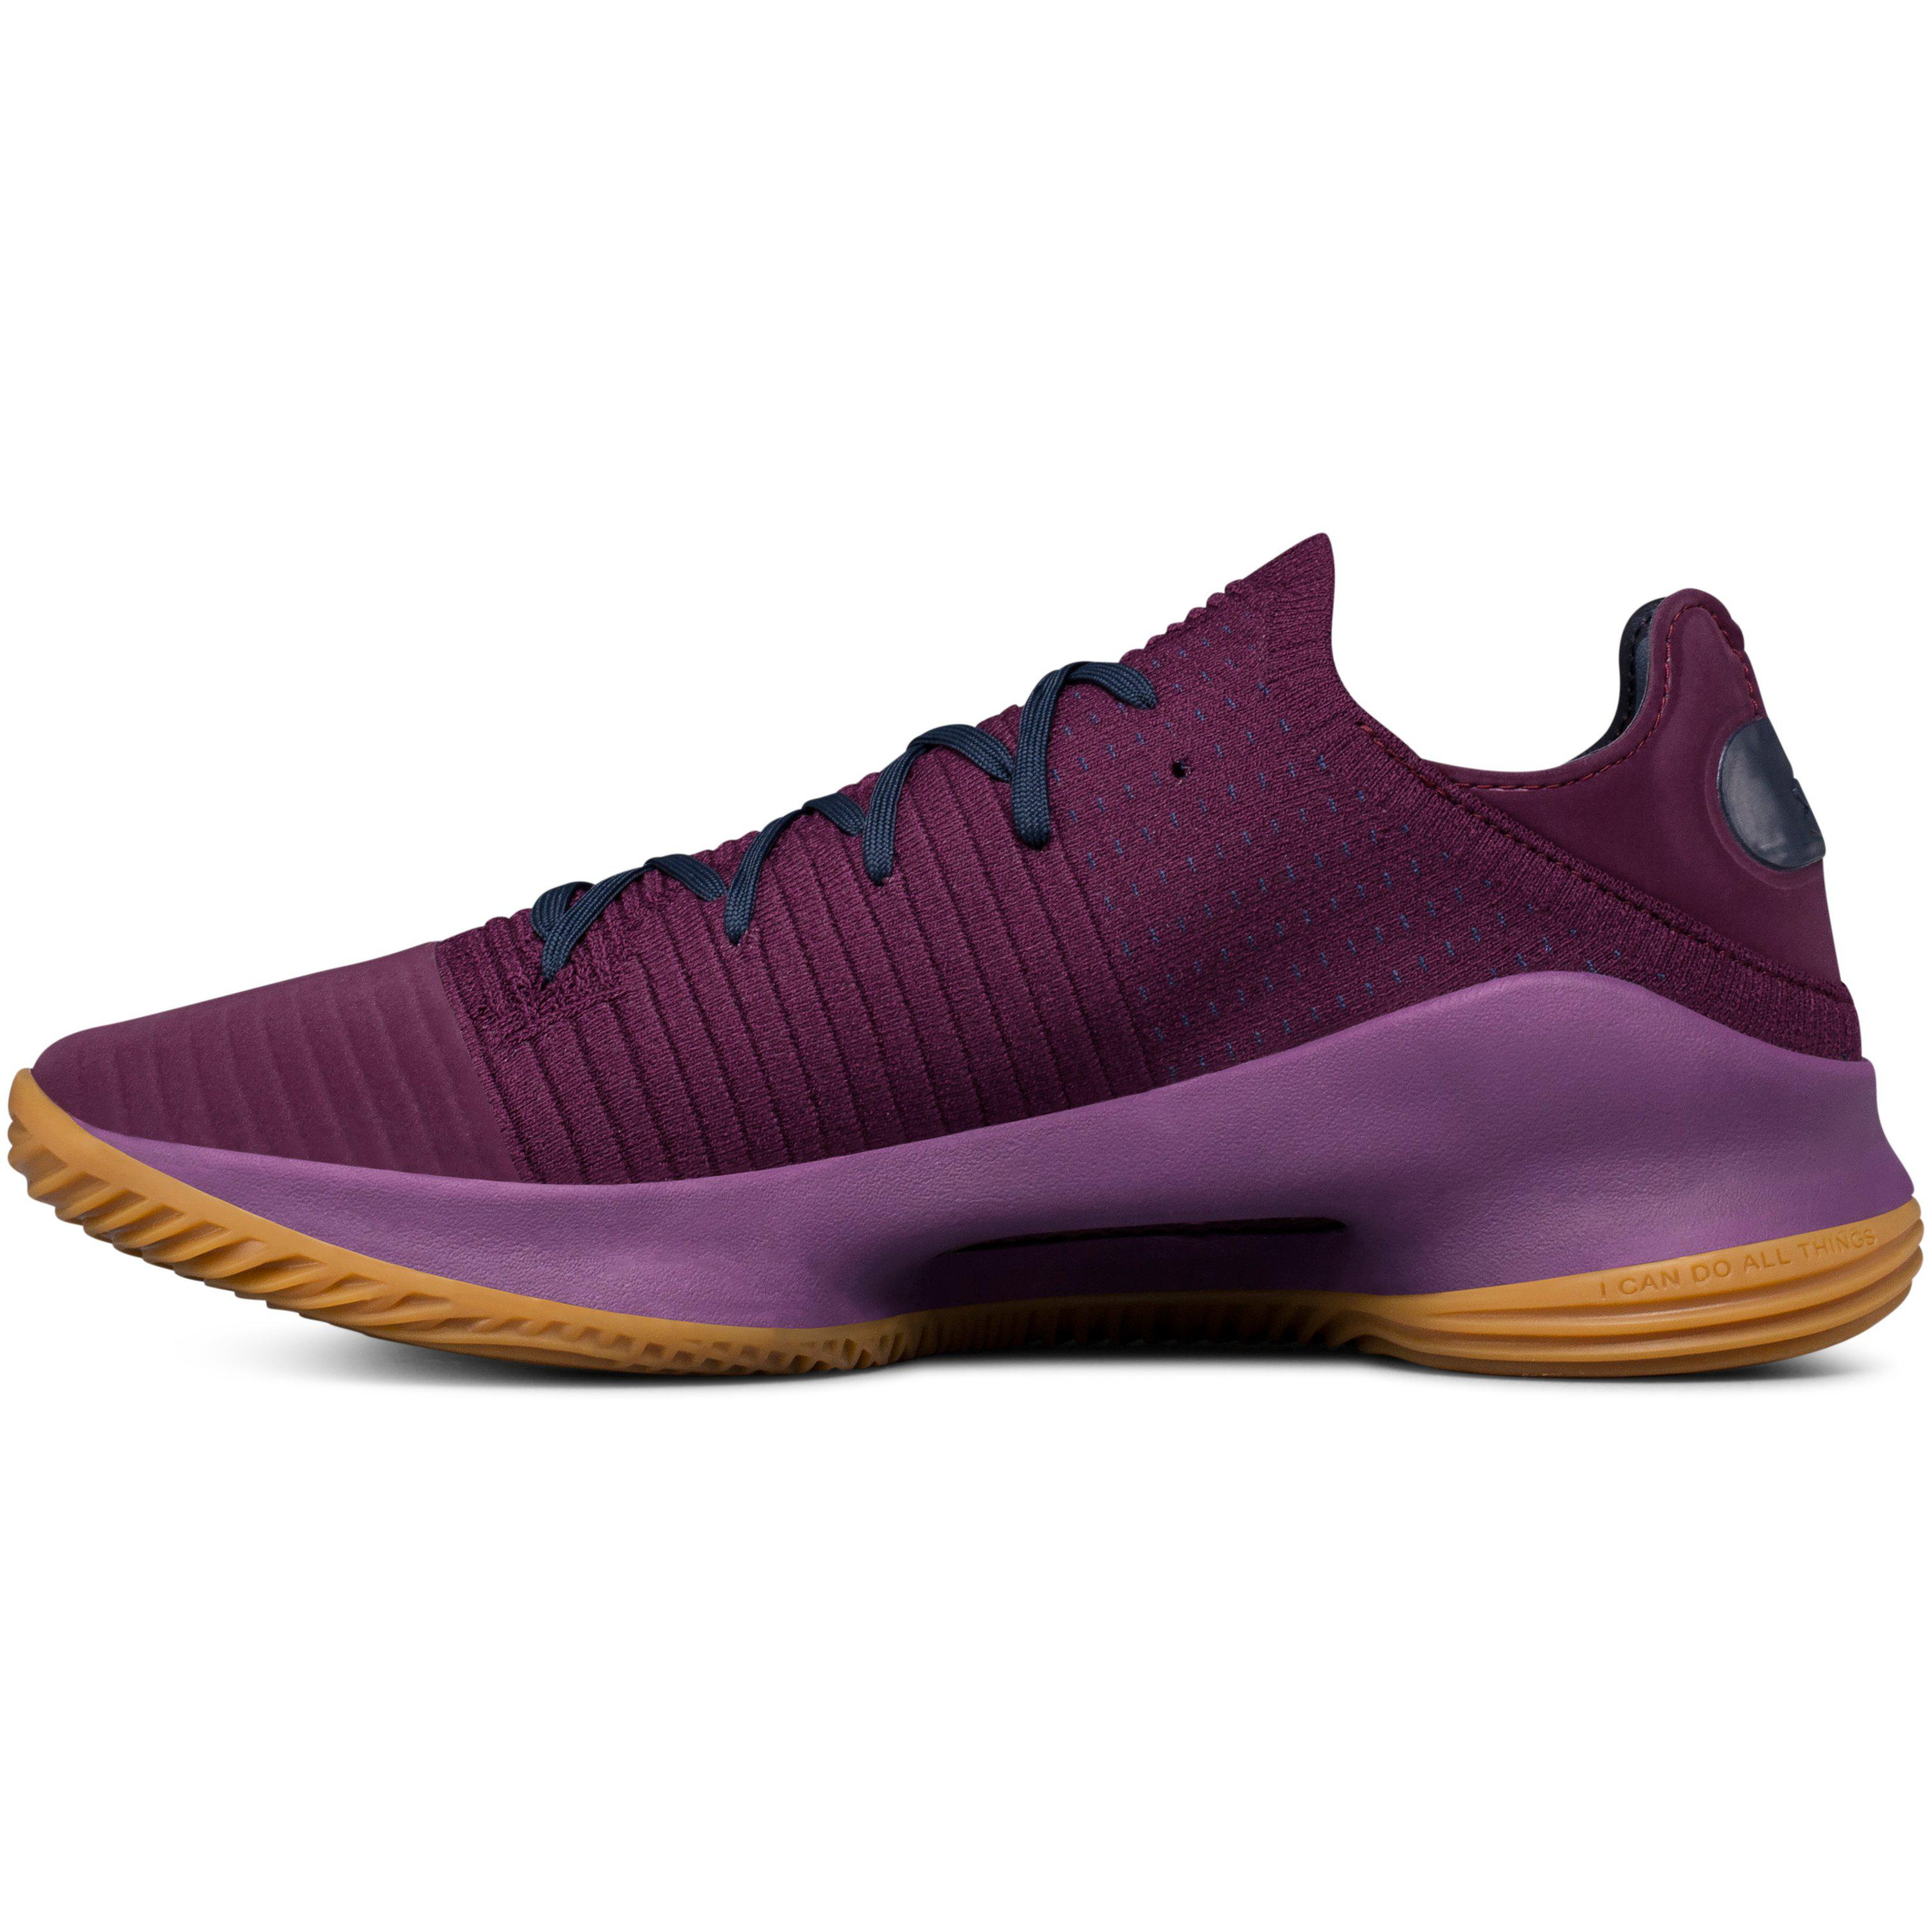 reputable site 1fec2 ac64a under armour curry 2 purple brown